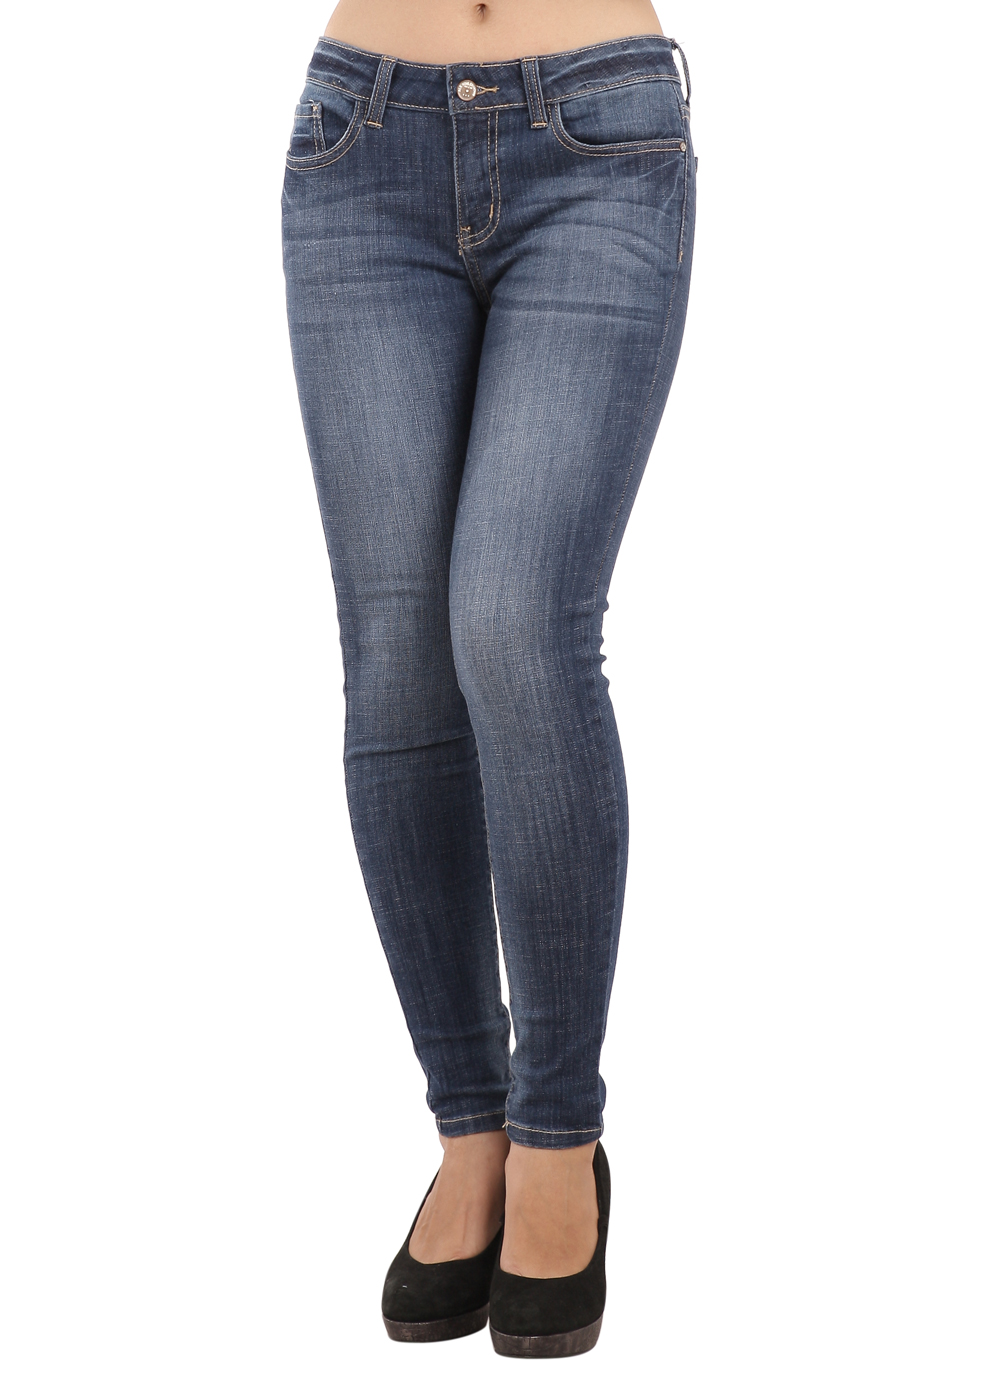 Quần Jeans Skinny Nữ ALE JEANS 60306SK